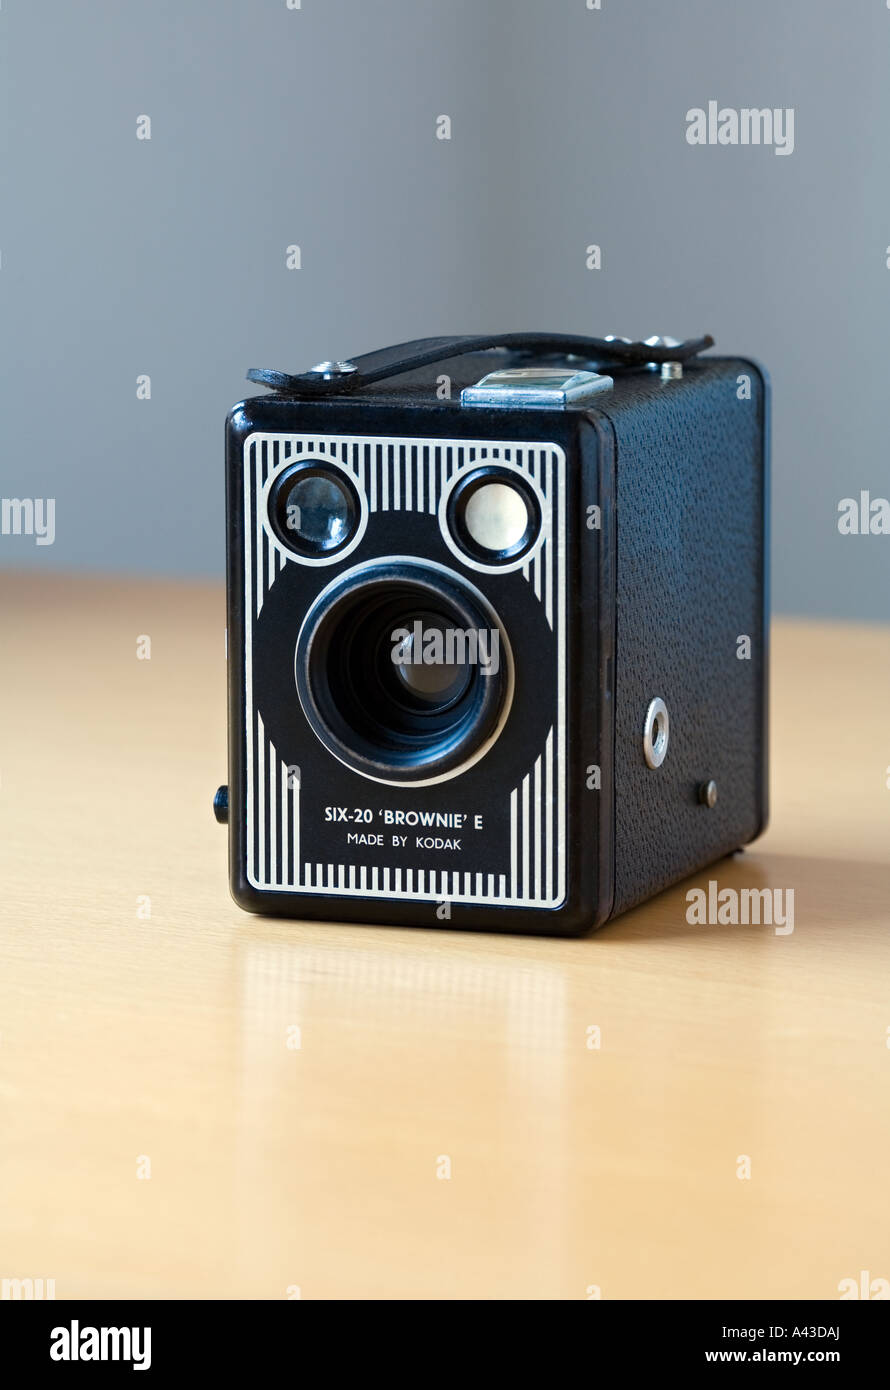 Vintage Kodak Box Brownie camera studio shot on a clean, shiny, reflective birch wood table and clean grey background. - Stock Image